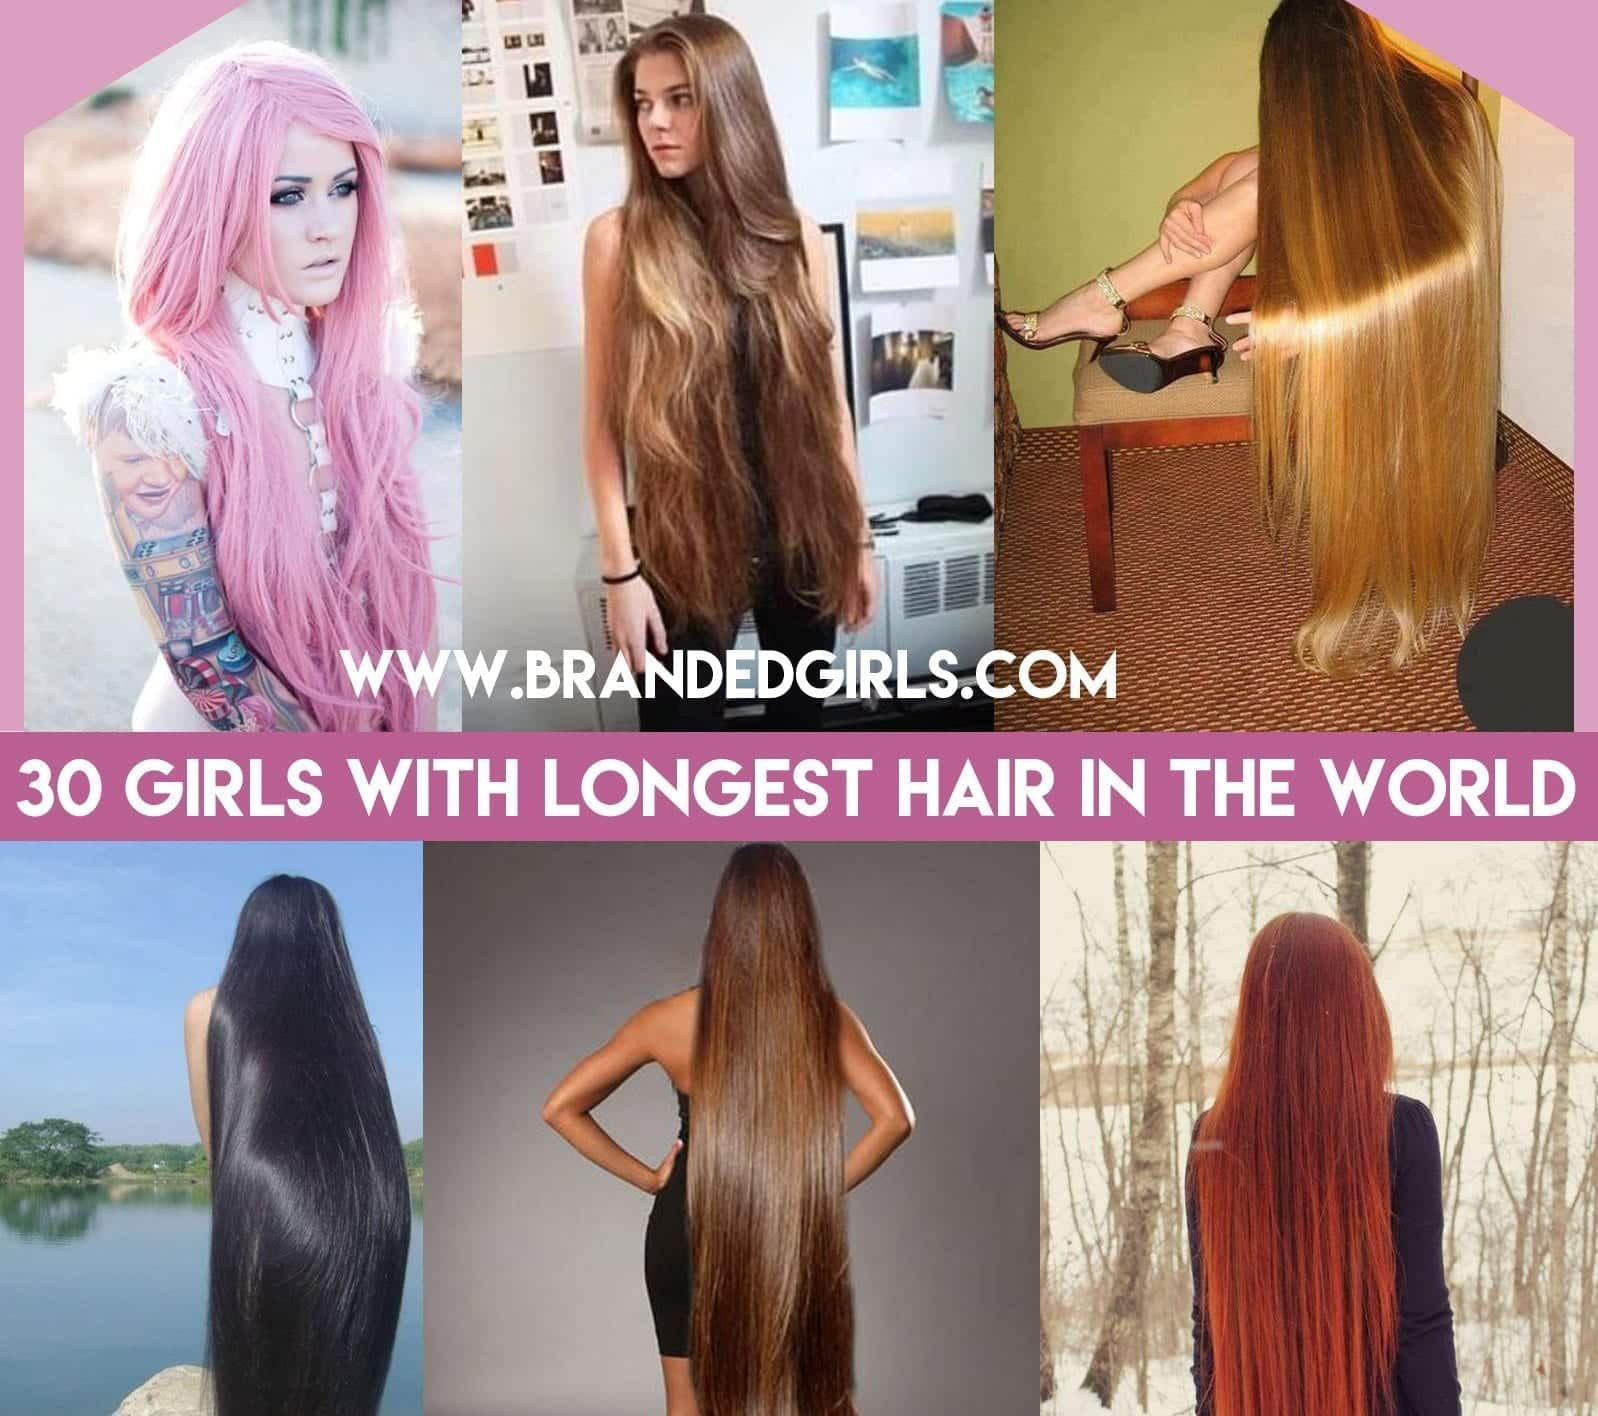 30 Girls with longest hair in the world